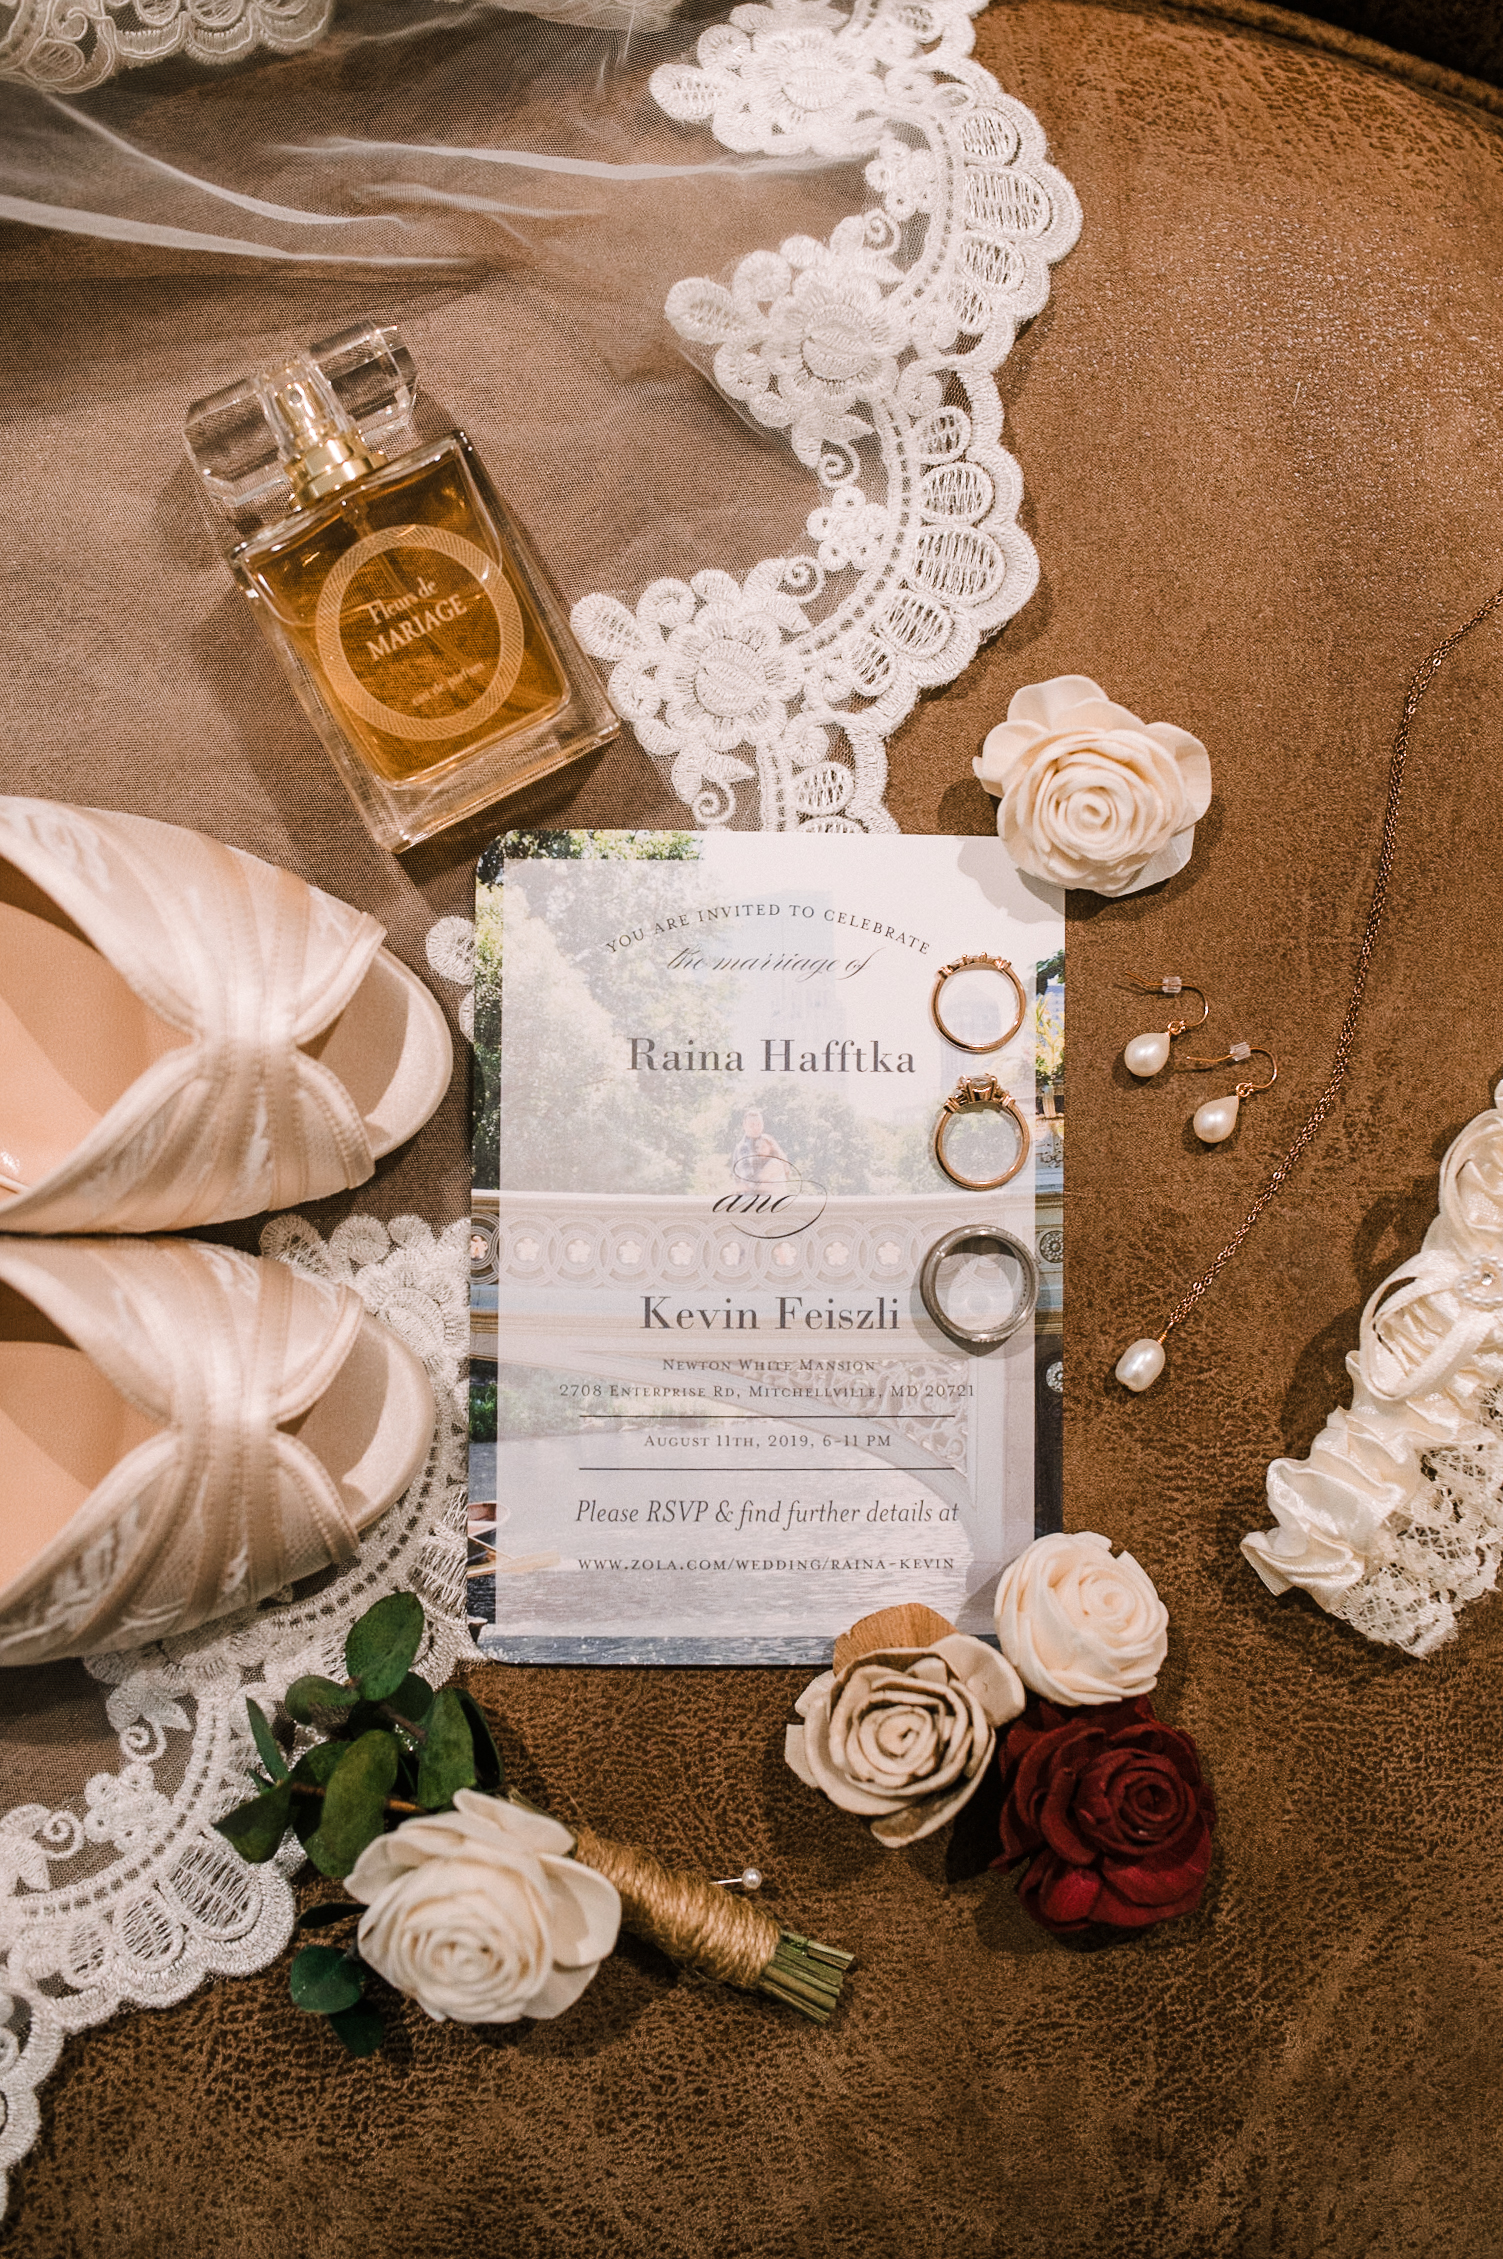 Bridal Detail Shot of Wedding Stationery and Rings at The Newton White Mansion